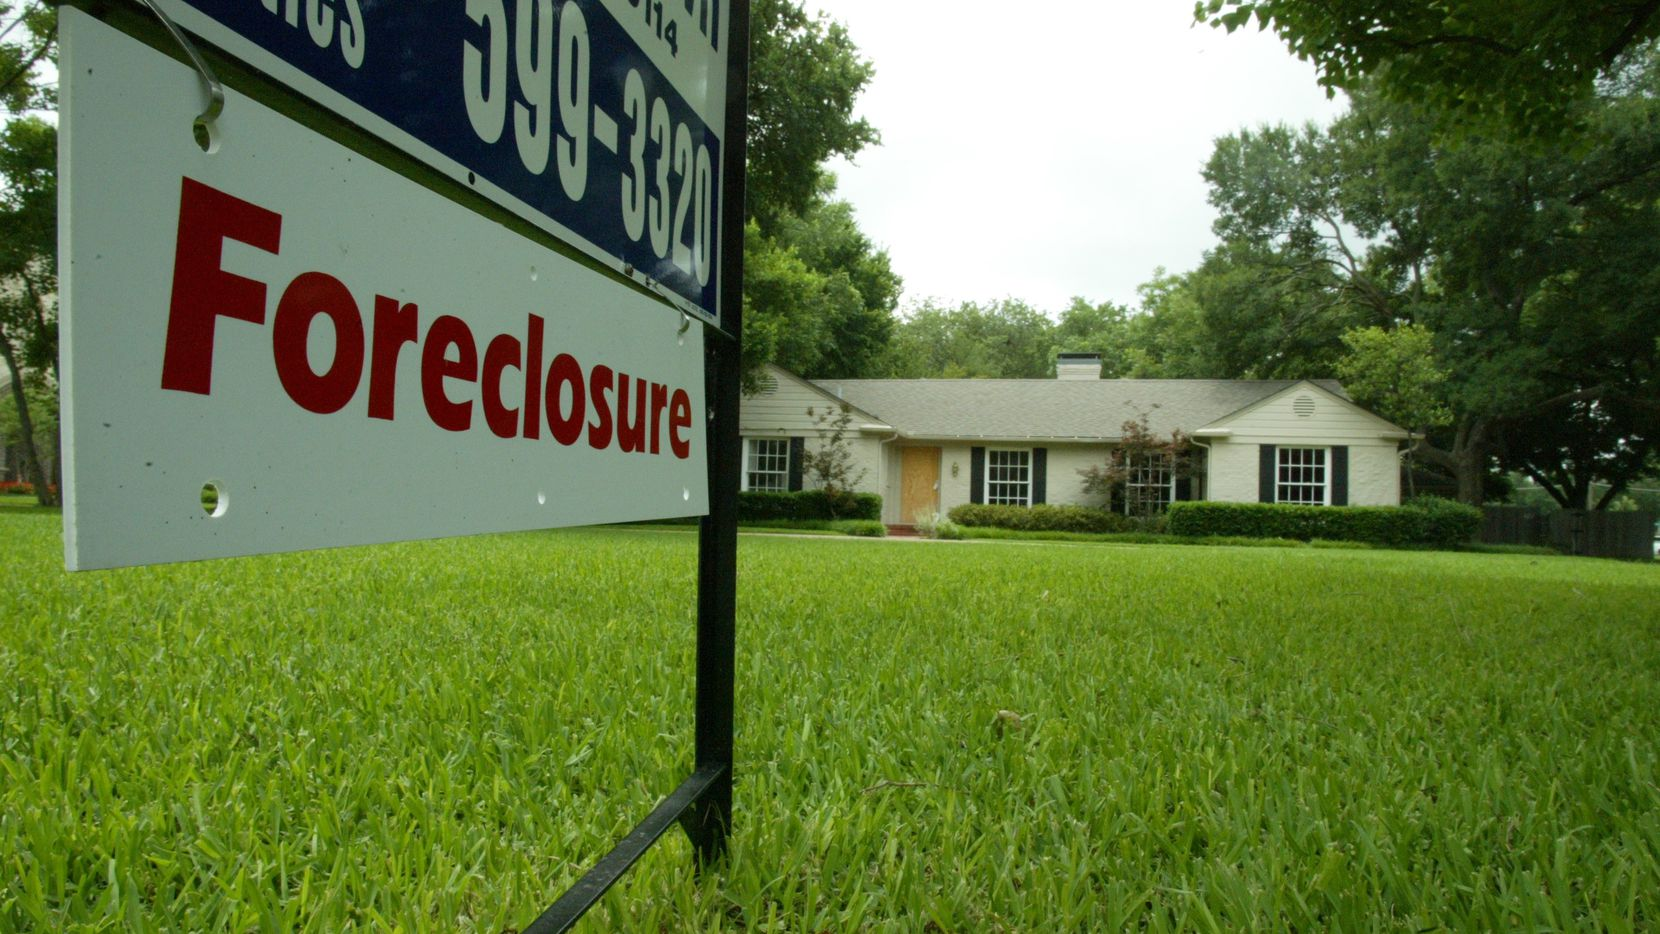 Nationwide mortgage delinquency rates are at a 20-year low, according to CoreLogic